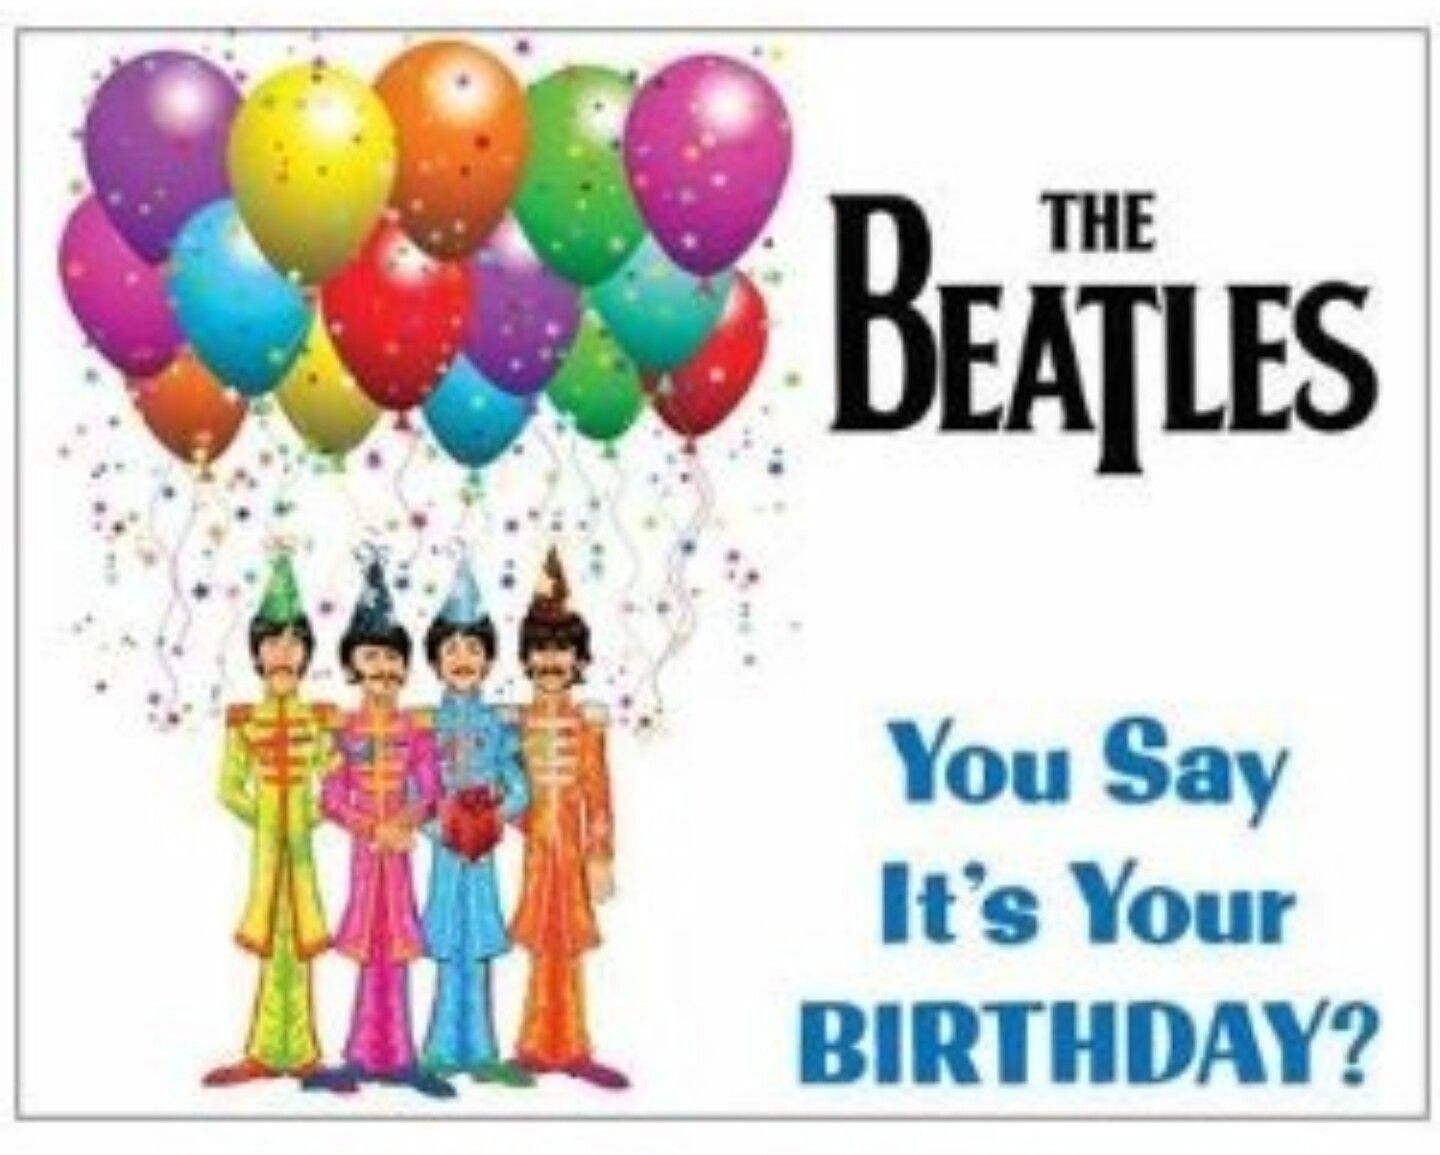 Pin by Toni Scavo on for greg Pinterest – Beatles Birthday Cards